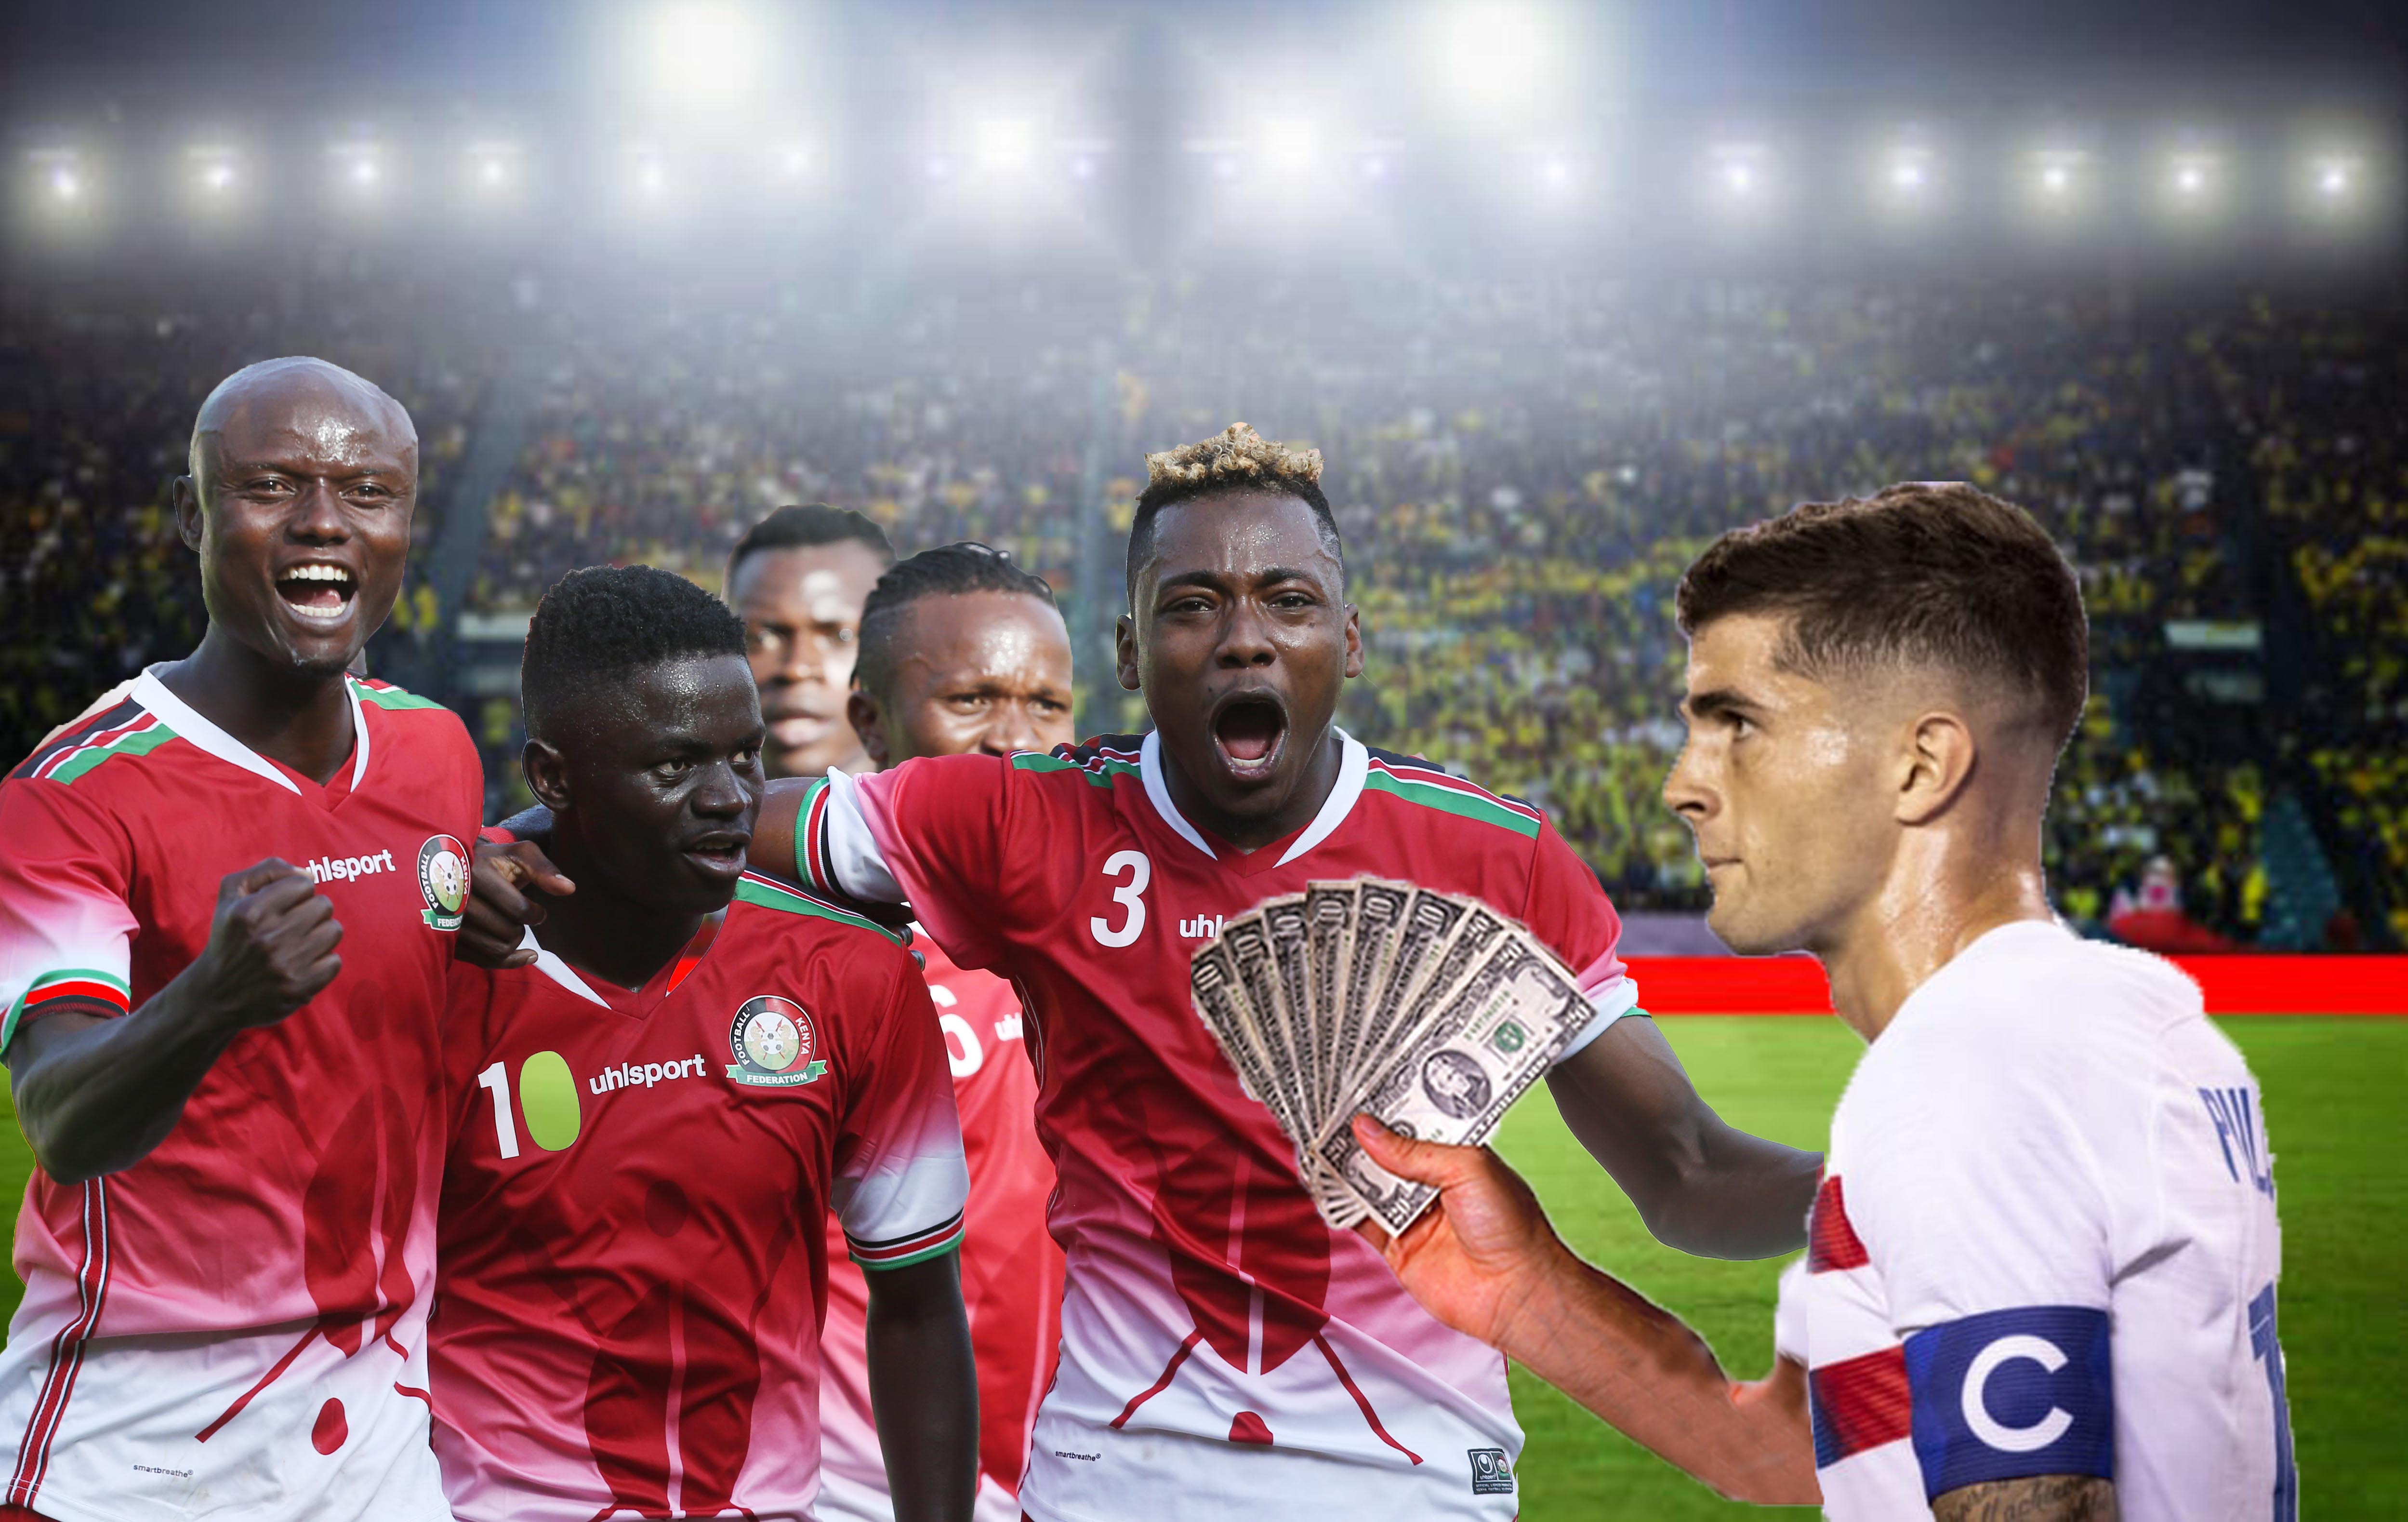 Qlamqtar 2022 World Cup – Team Profile: Kenya – 20, 22 things about Kenya that you'd have to be a goddam moron not to already know (pt.1)